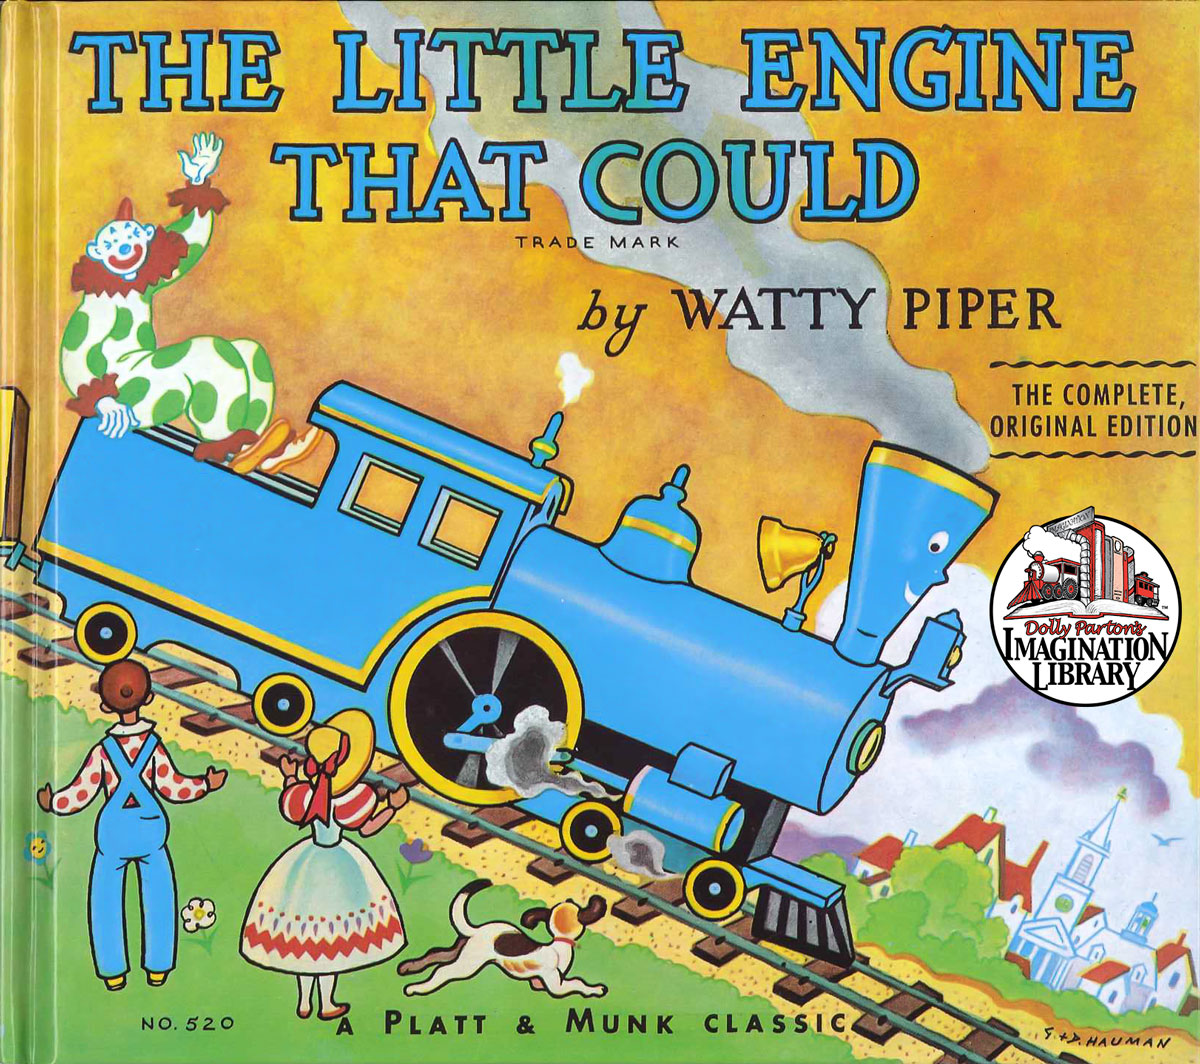 LittleEngineThatCould.jpg